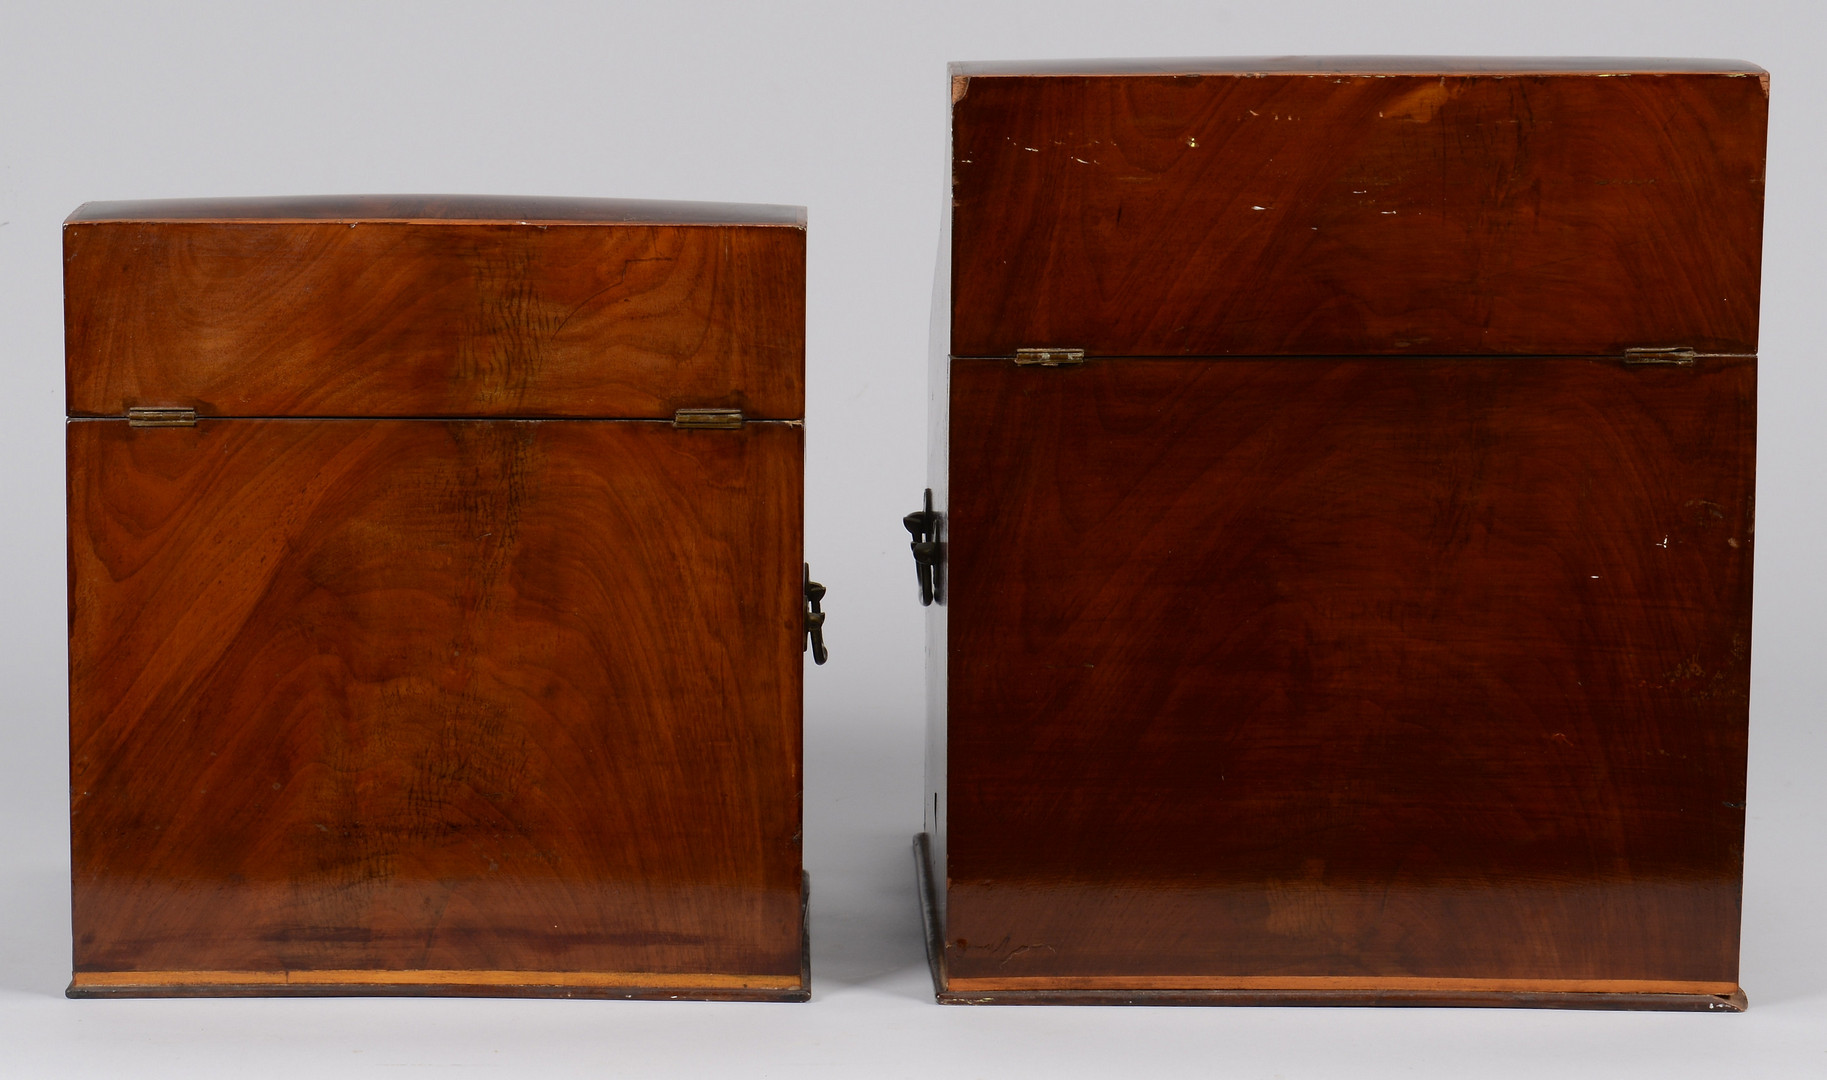 Lot 157: Two Knife Boxes, c.1830